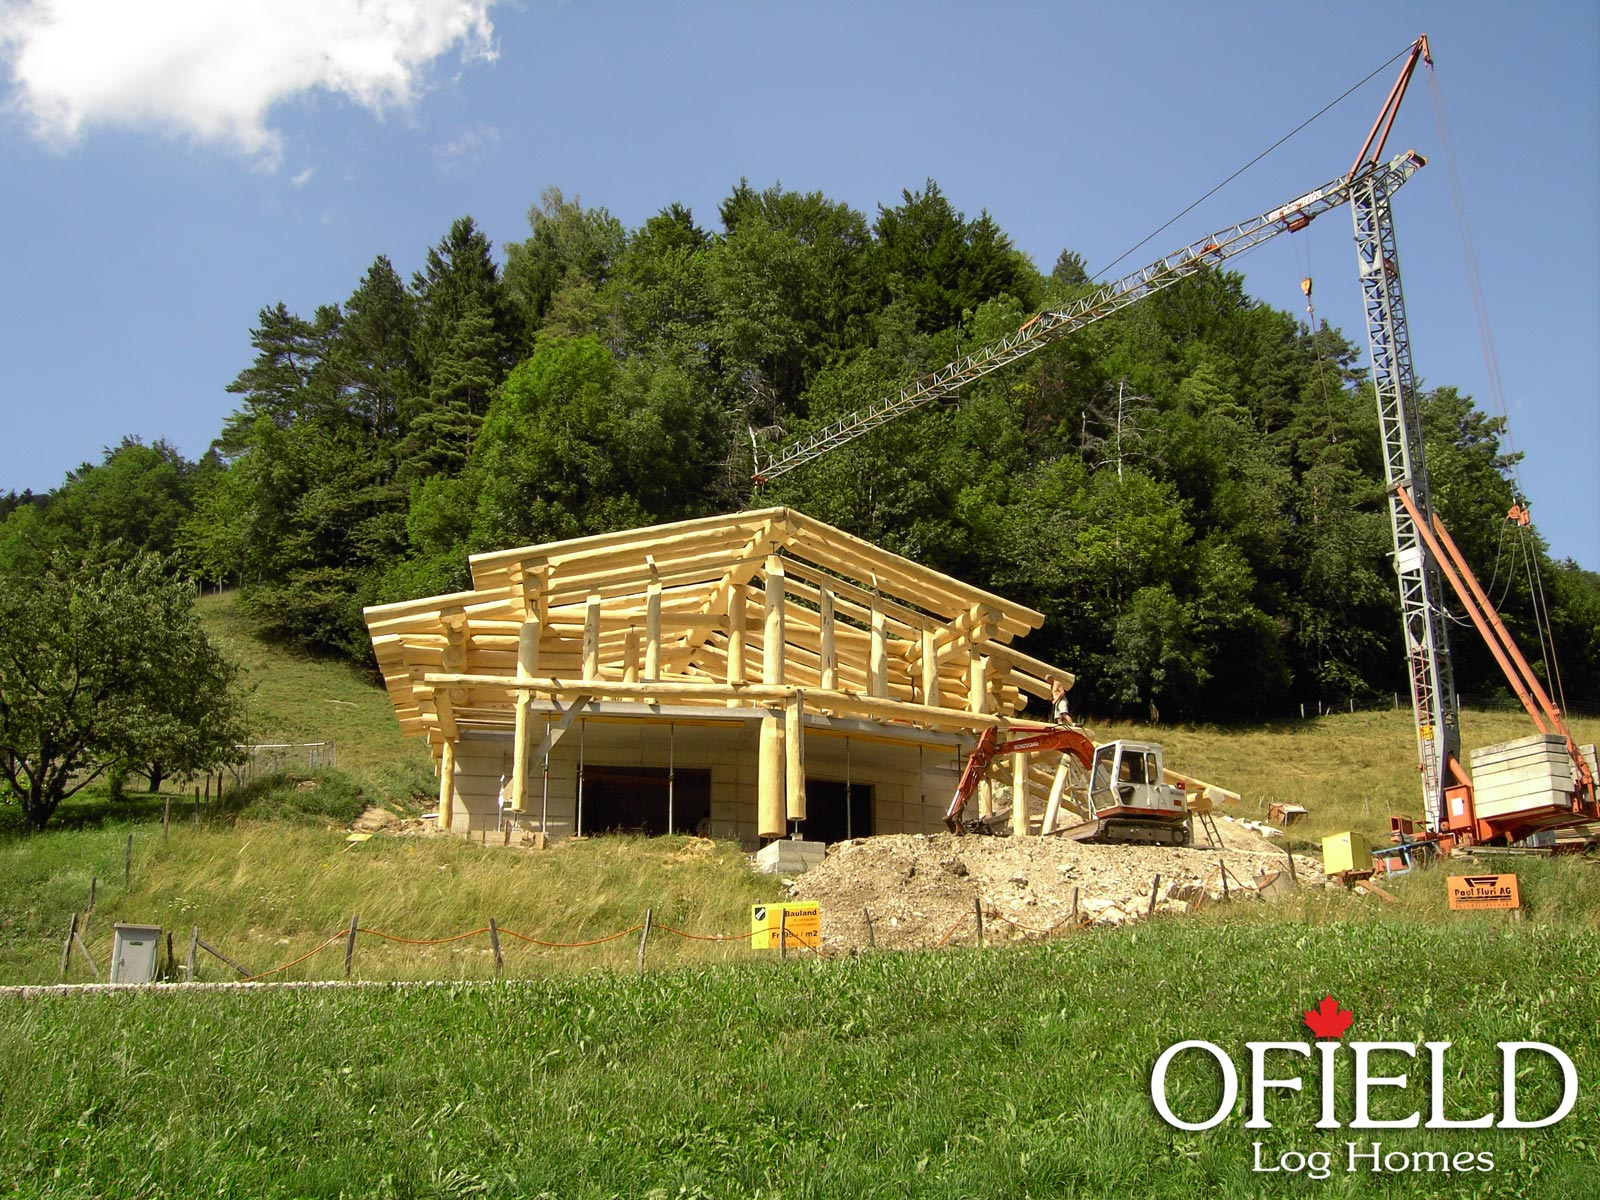 Ofield log homes wedgewood for Wedgewood builders